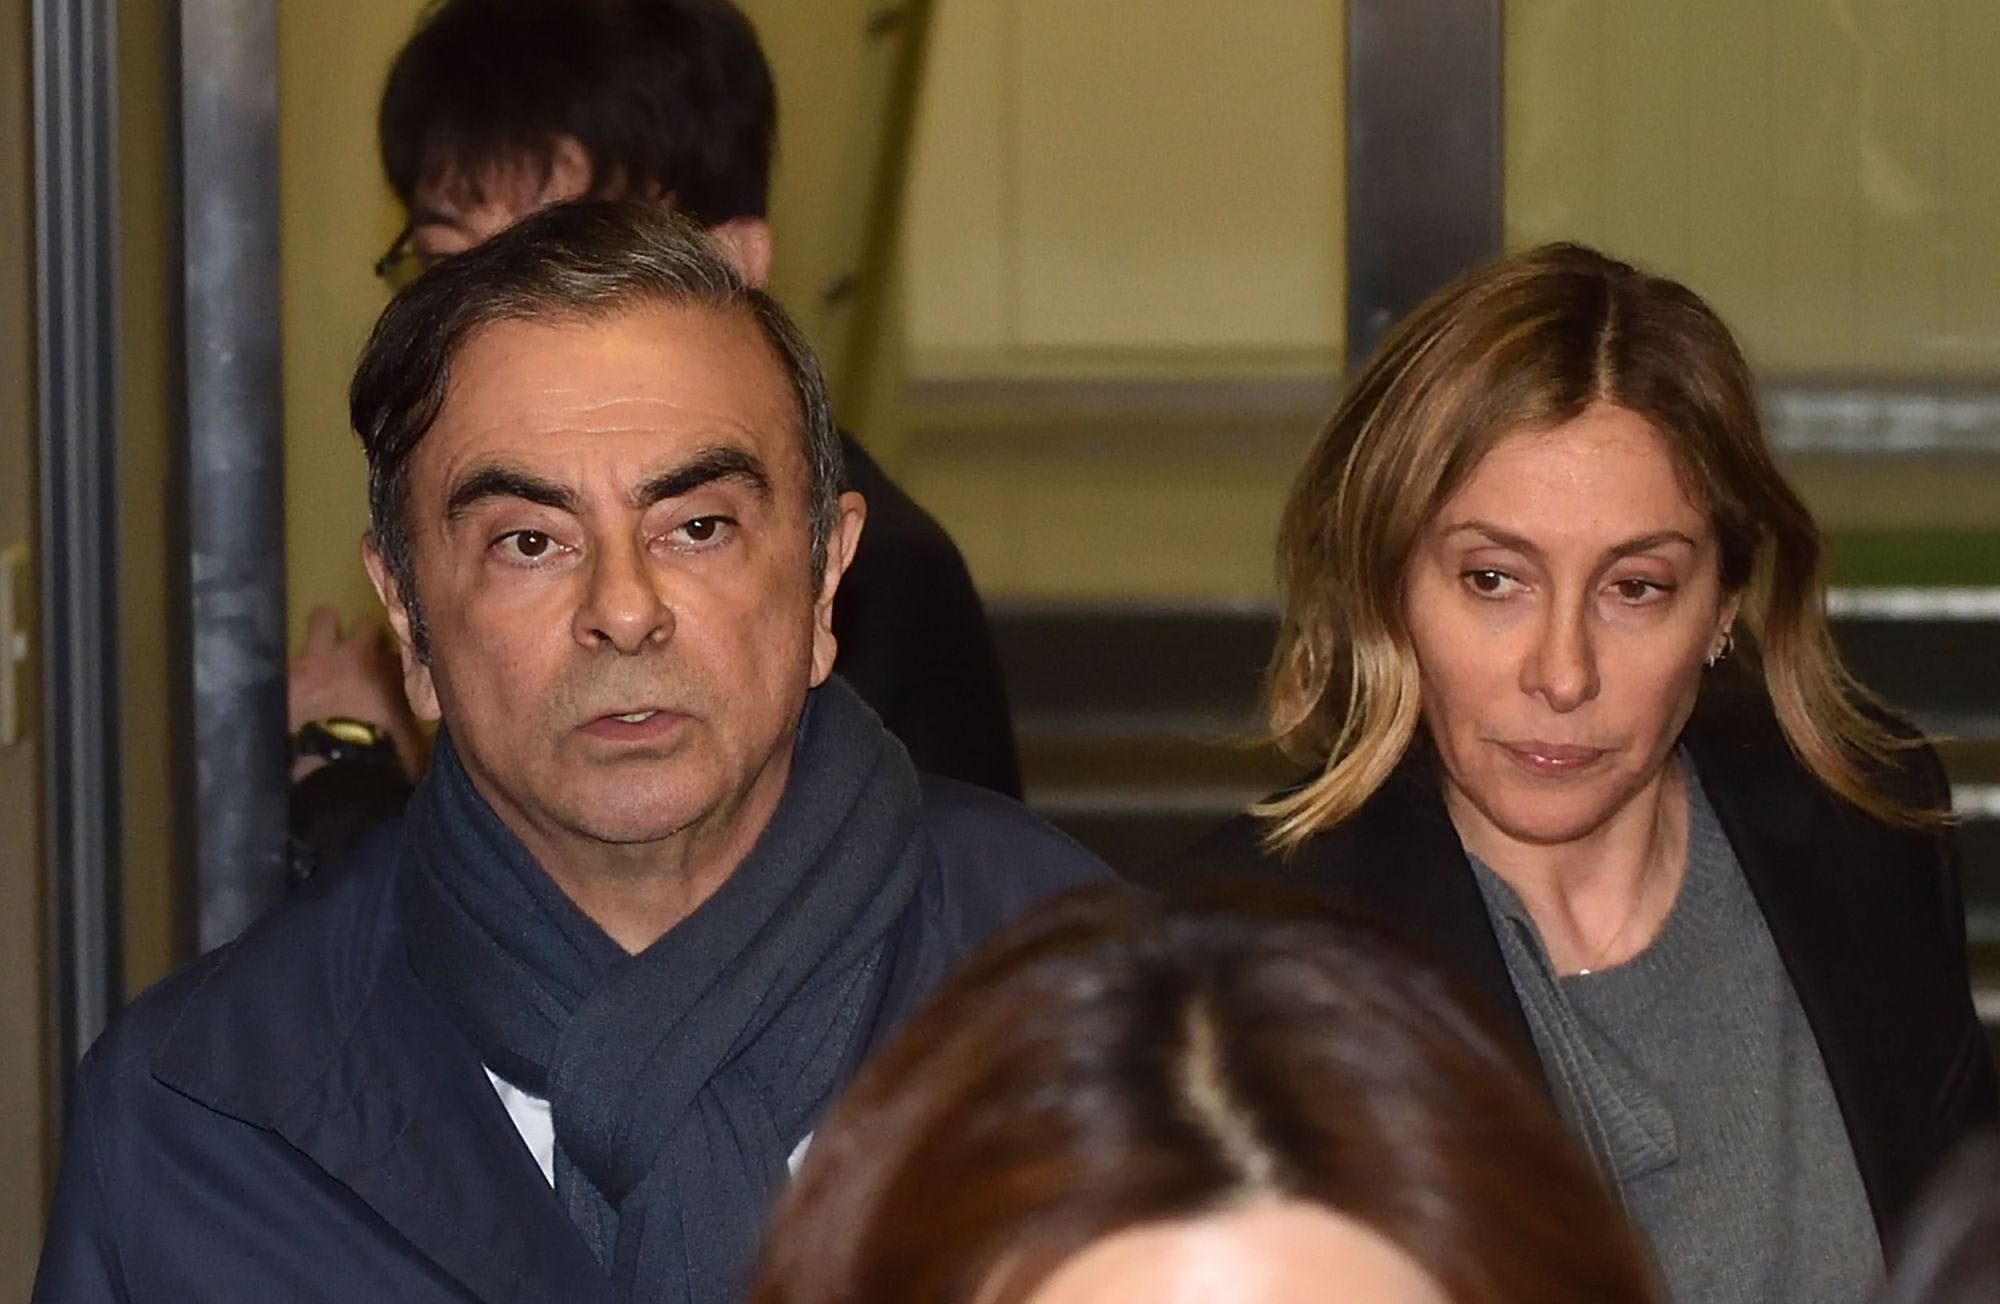 Carole Ghosn, wife of former Nissan Chairman Carlos Ghosn, has been active in speaking to the media to draw attention to Japan's legislation that allows authorities to detain suspects for lengthy periods. | AFP-JIJI